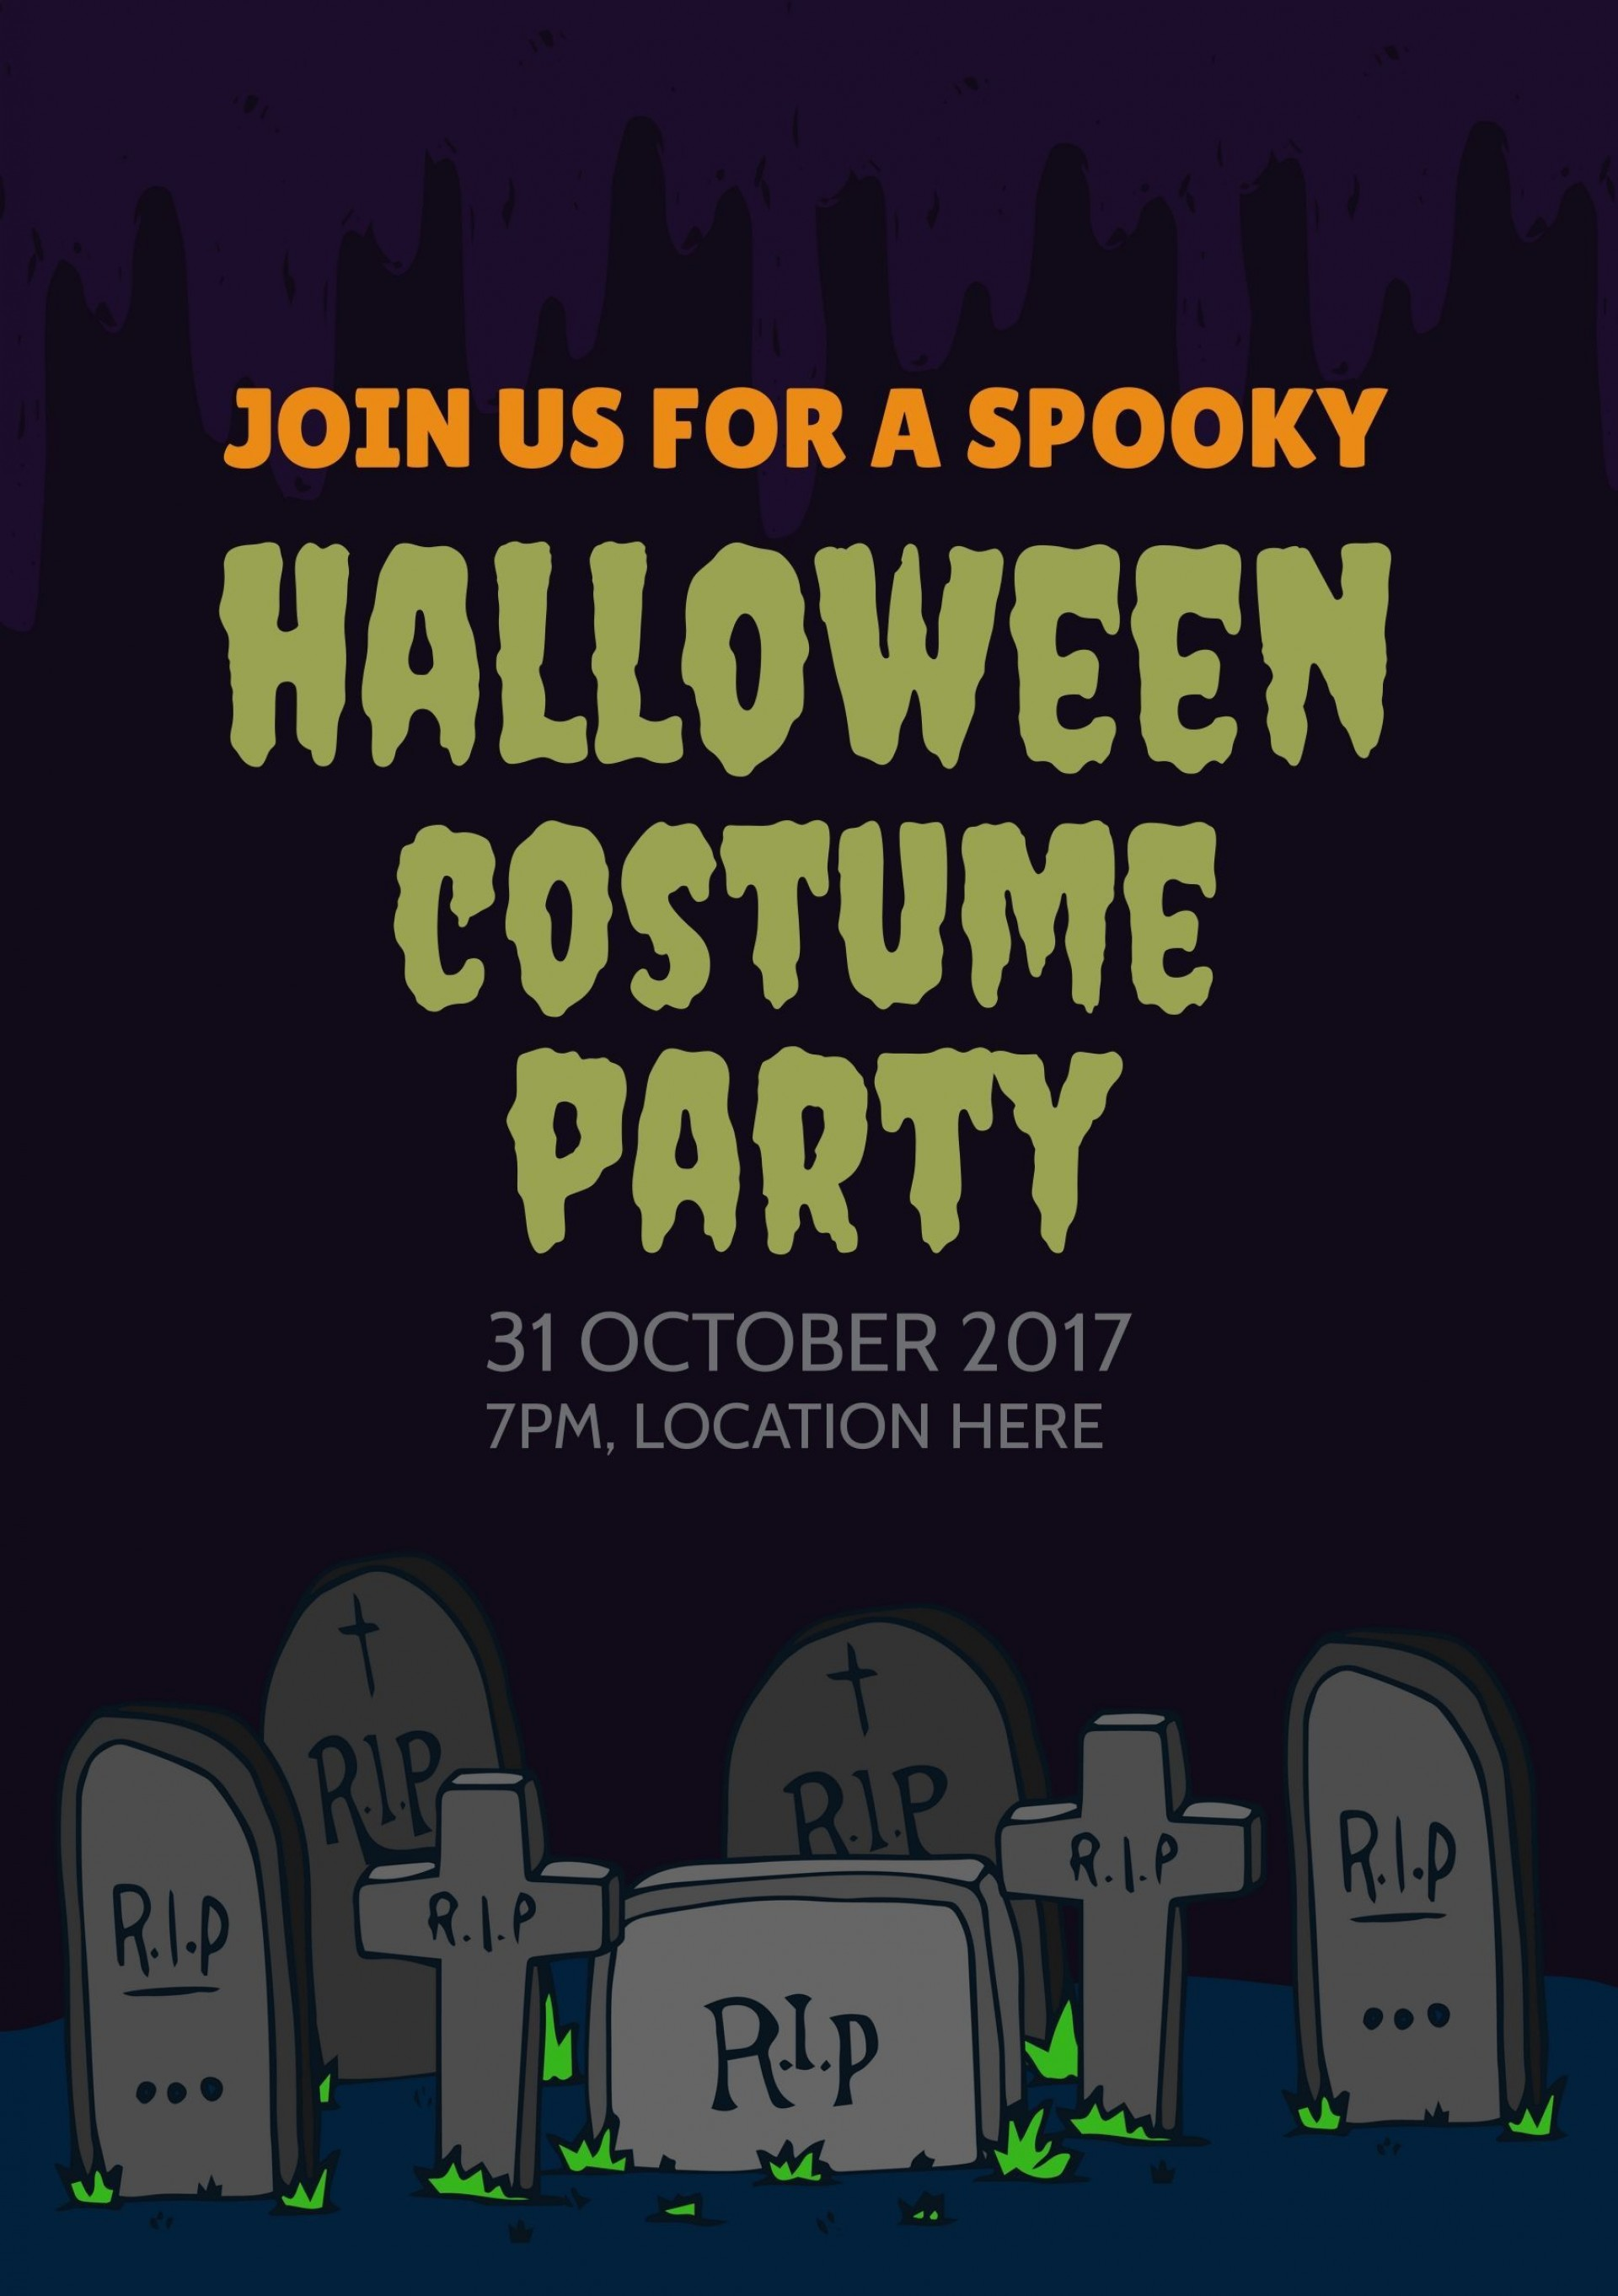 004 Exceptional Halloween Party Invite Template High Definition  Templates - Free Printable Spooky Invitation Birthday1920